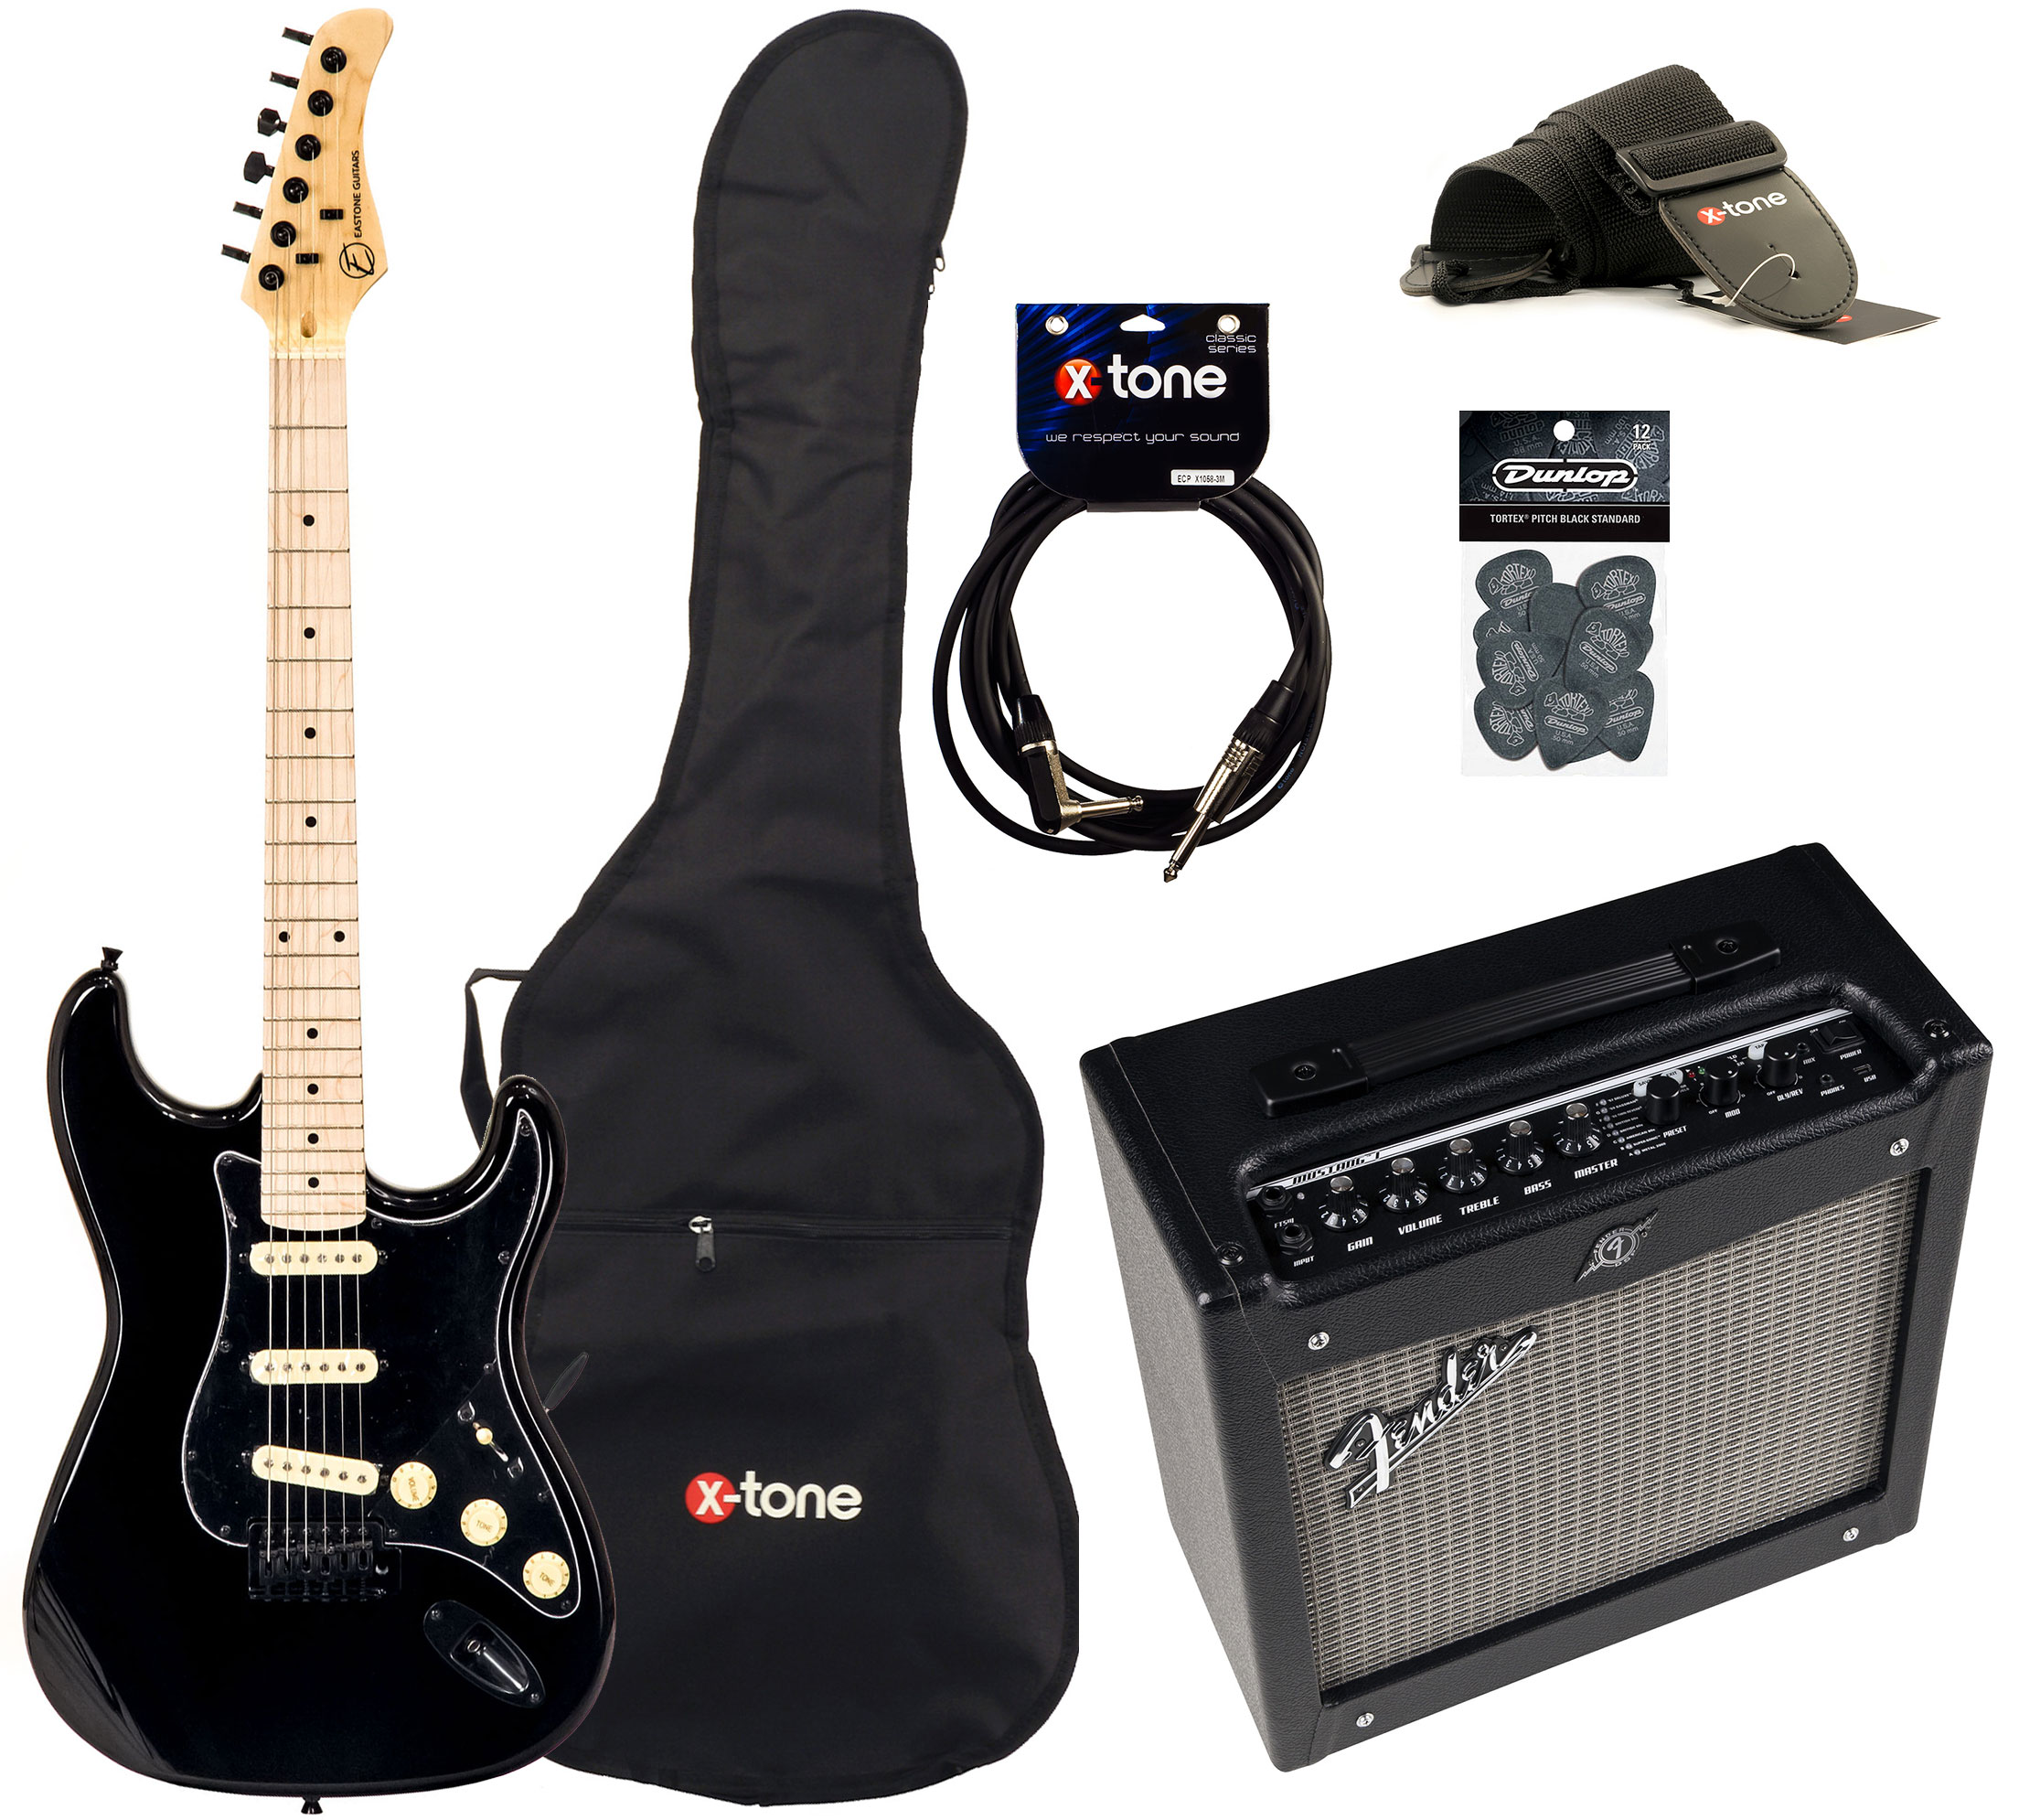 Fender Mustang 1 V2 >> Str70 Gil Fender Mustang I V2 Accessories Black